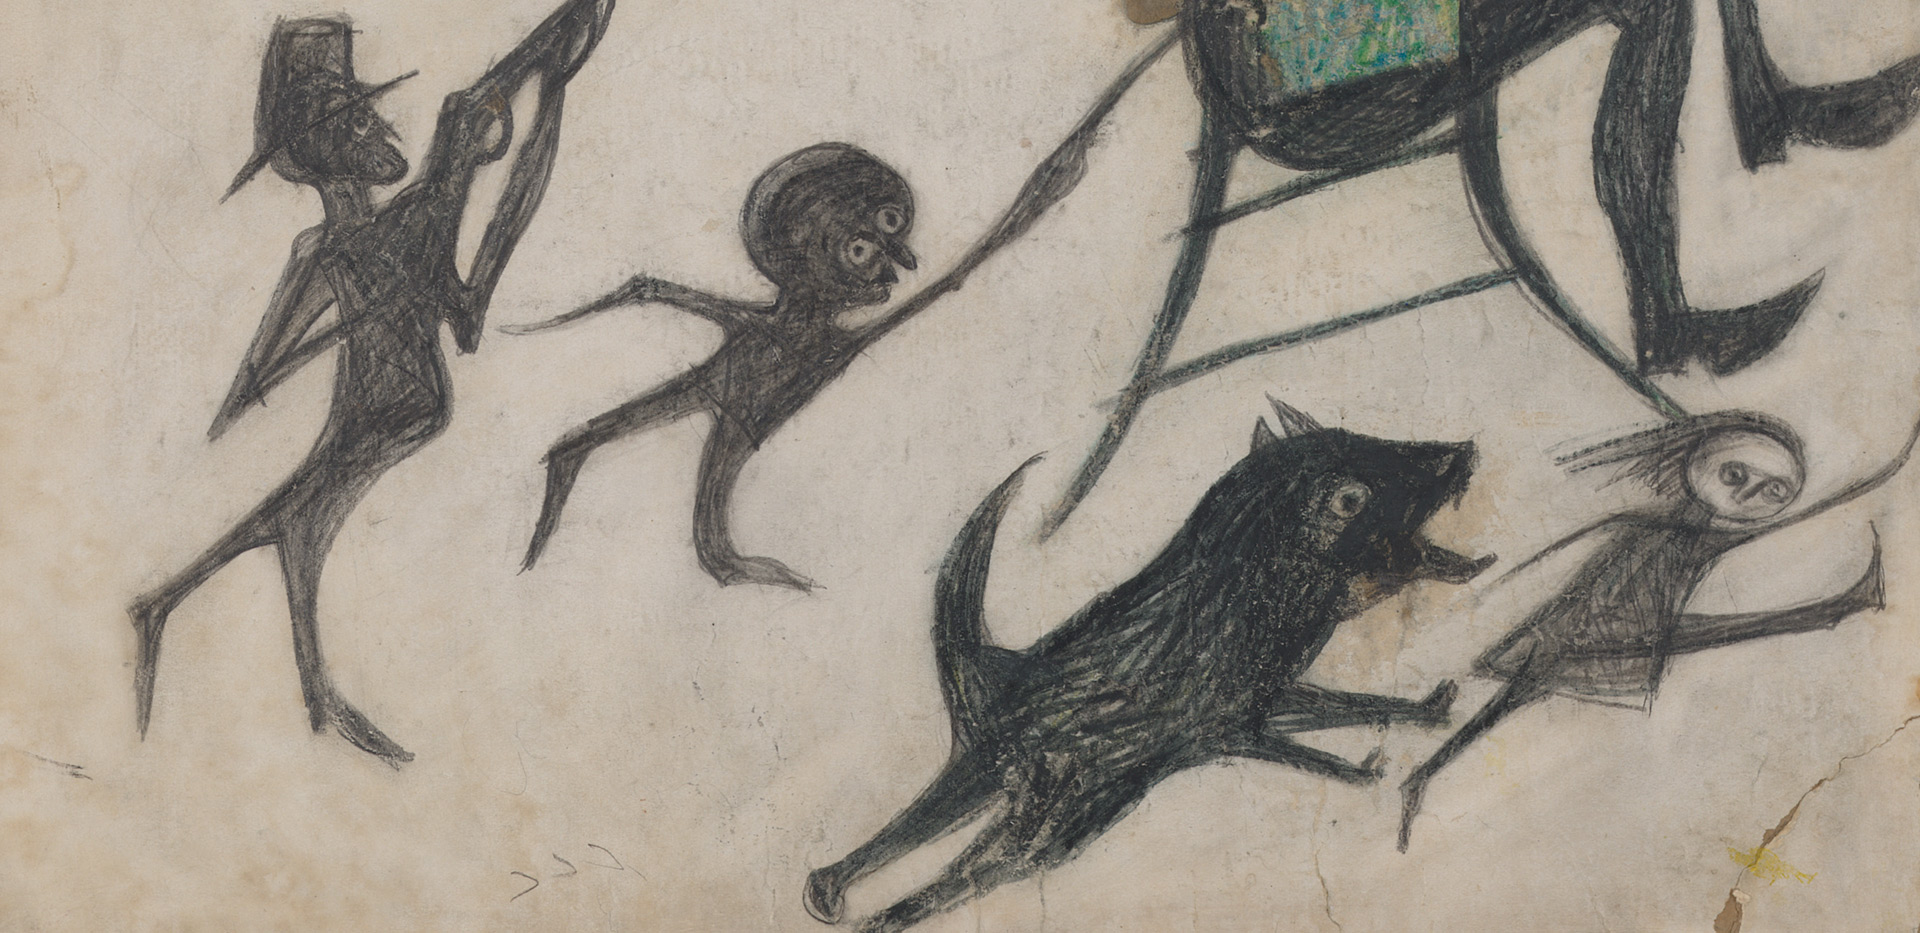 A detail from a work by Bill Traylor, titled Exciting Event (Man on Chair, Man with Rifle, Dog Chasing Girl, Yellow Bird and Other Figures), dated 1939-1942.